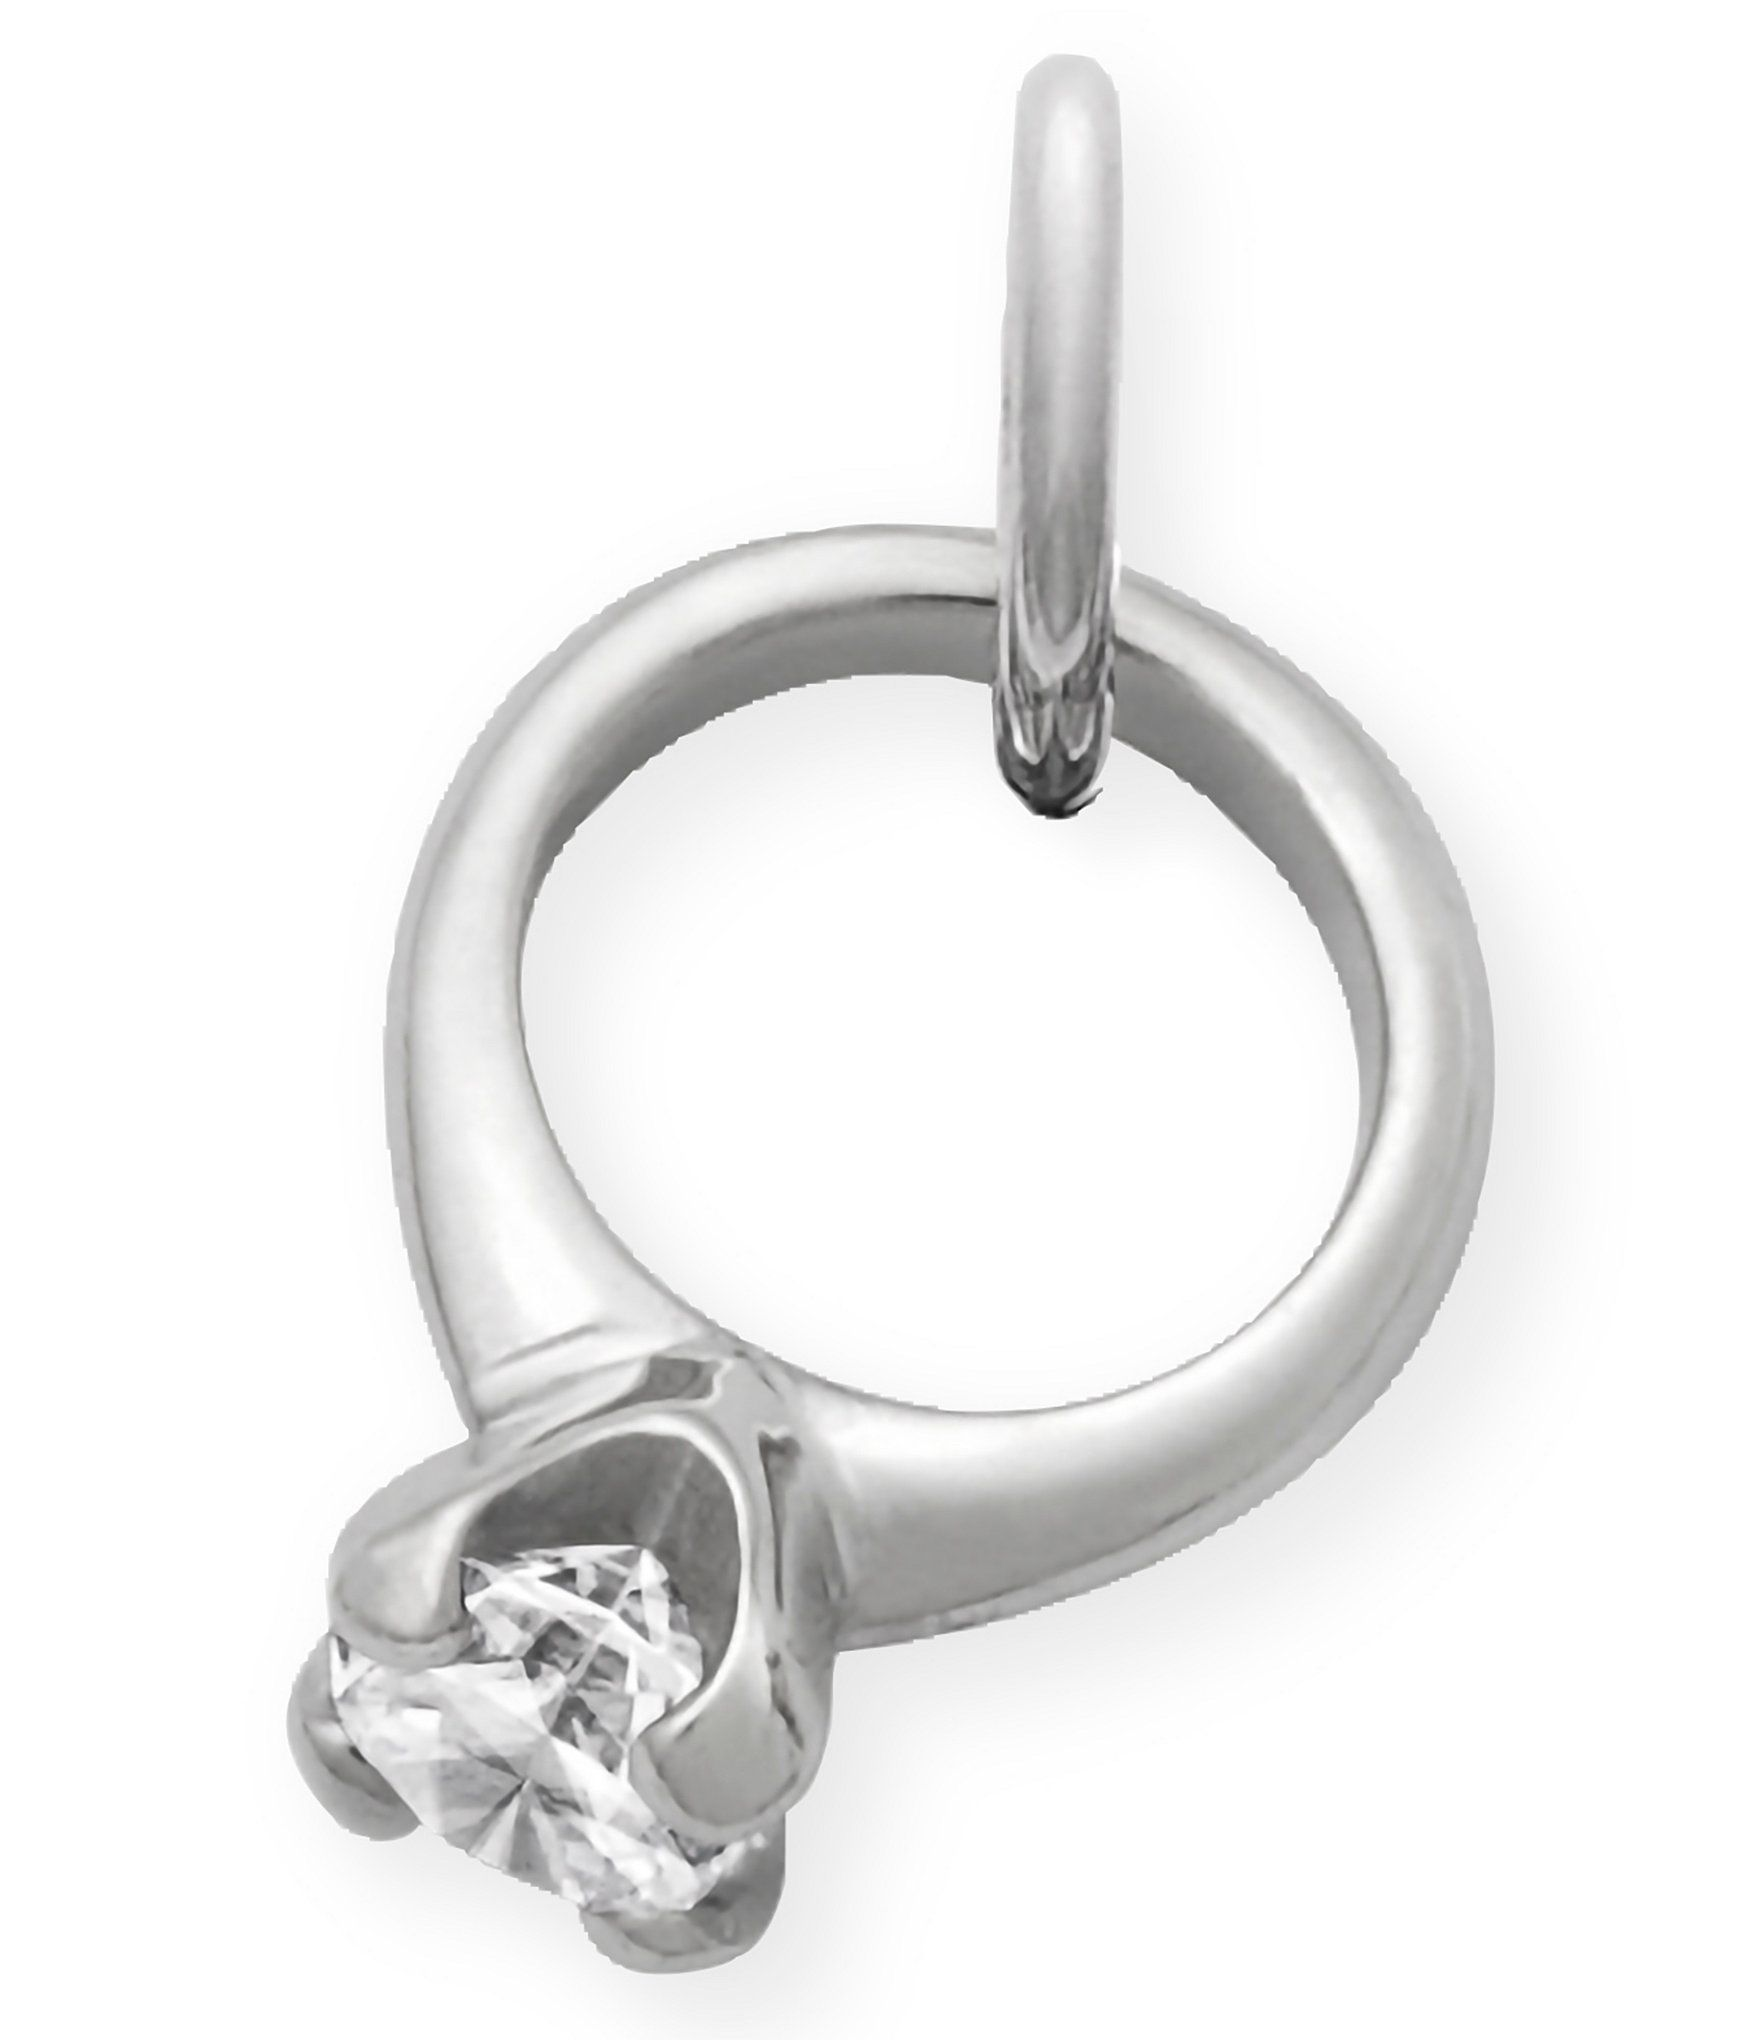 James Avery Engagement Ring Charm With Cubic Zirconia Dillards